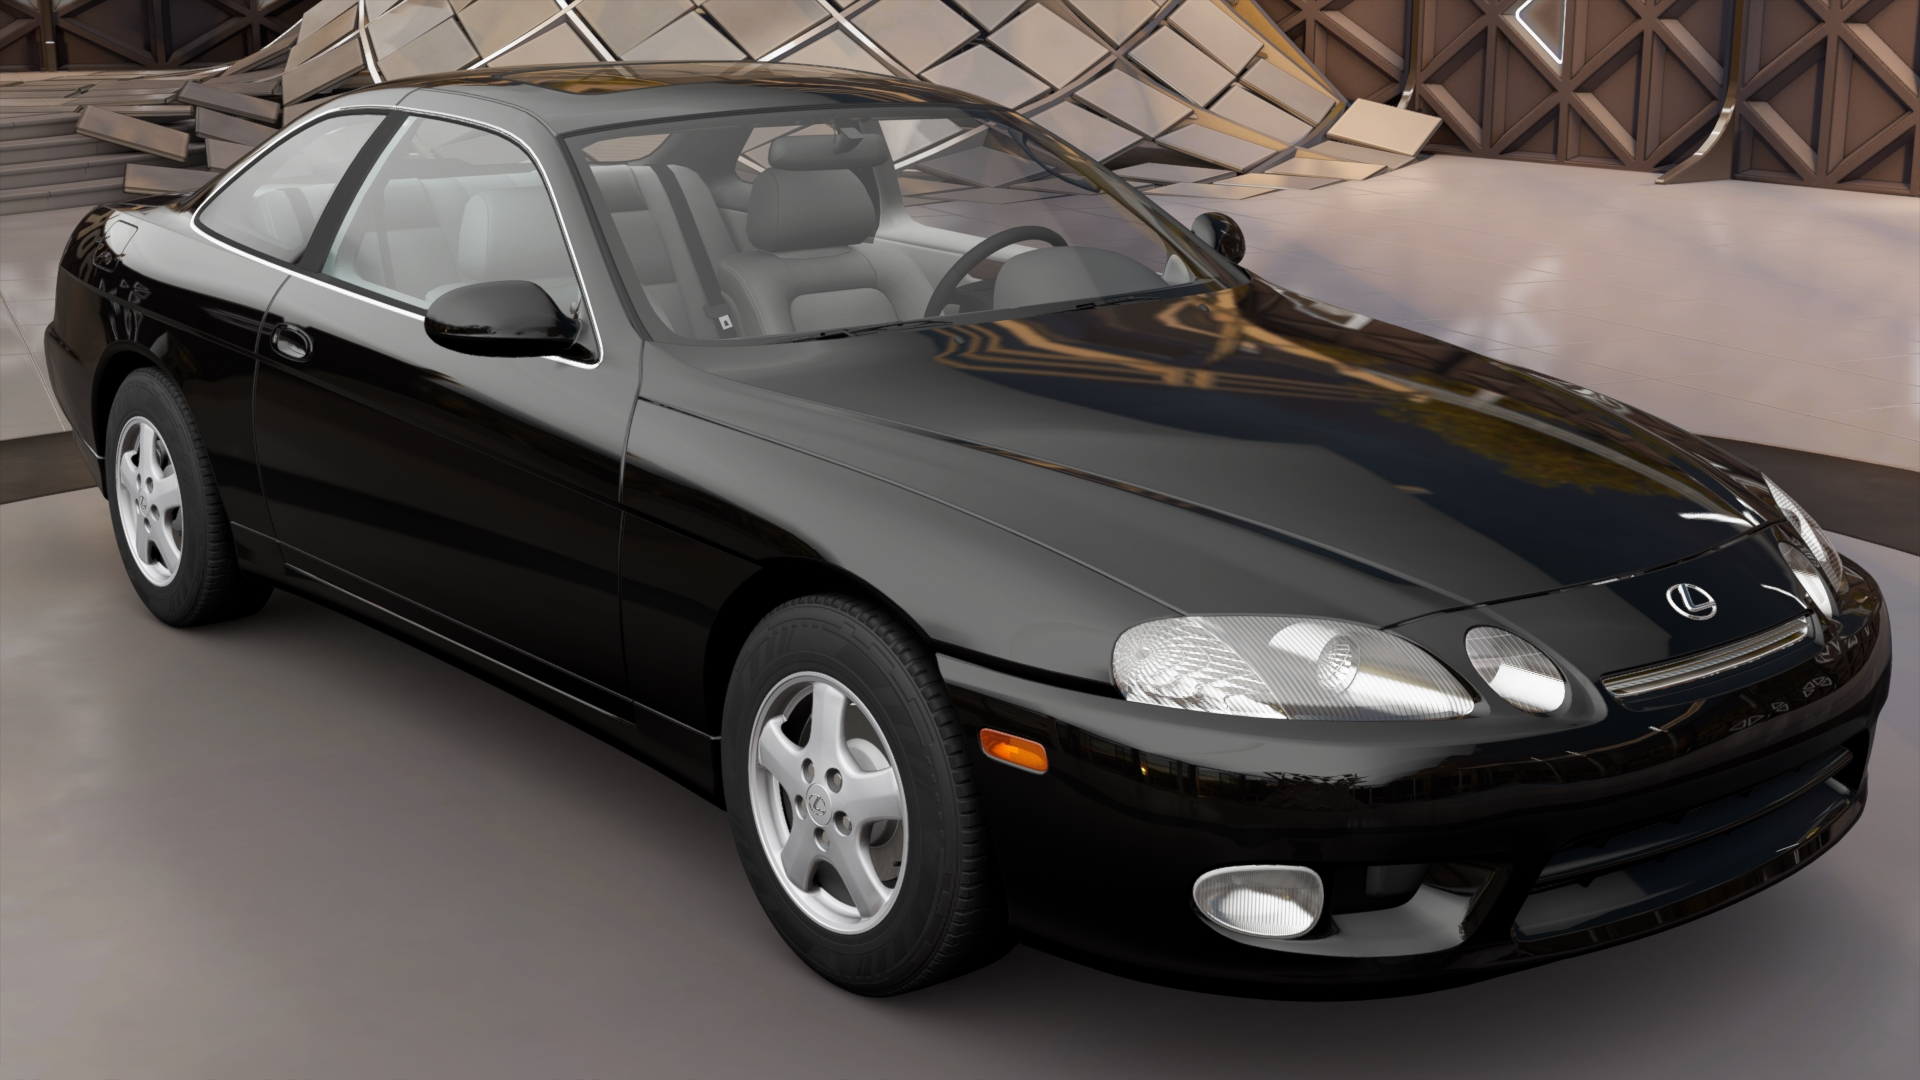 https://vignette.wikia.nocookie.net/forzamotorsport/images/3/3b/FH3_Lexus_SC300_Front.jpg/revision/latest?cb=20180119233011